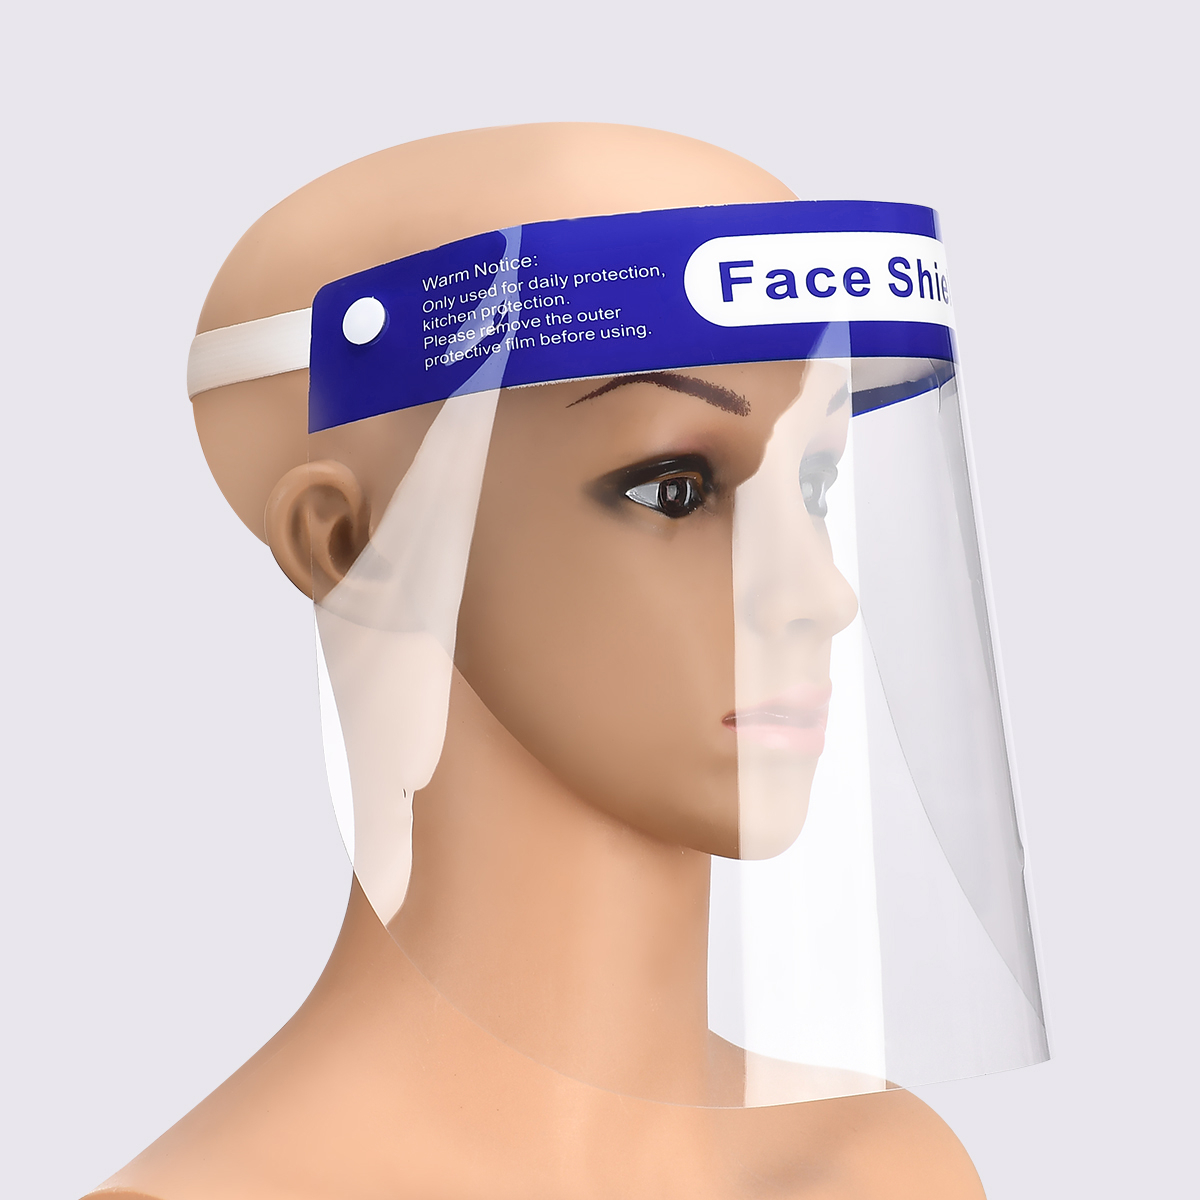 Face Care Protection Shield Protect Eyes Mouth With An Elastic Protective Film Tape A Comfort Sponge Health Cover Face Shield